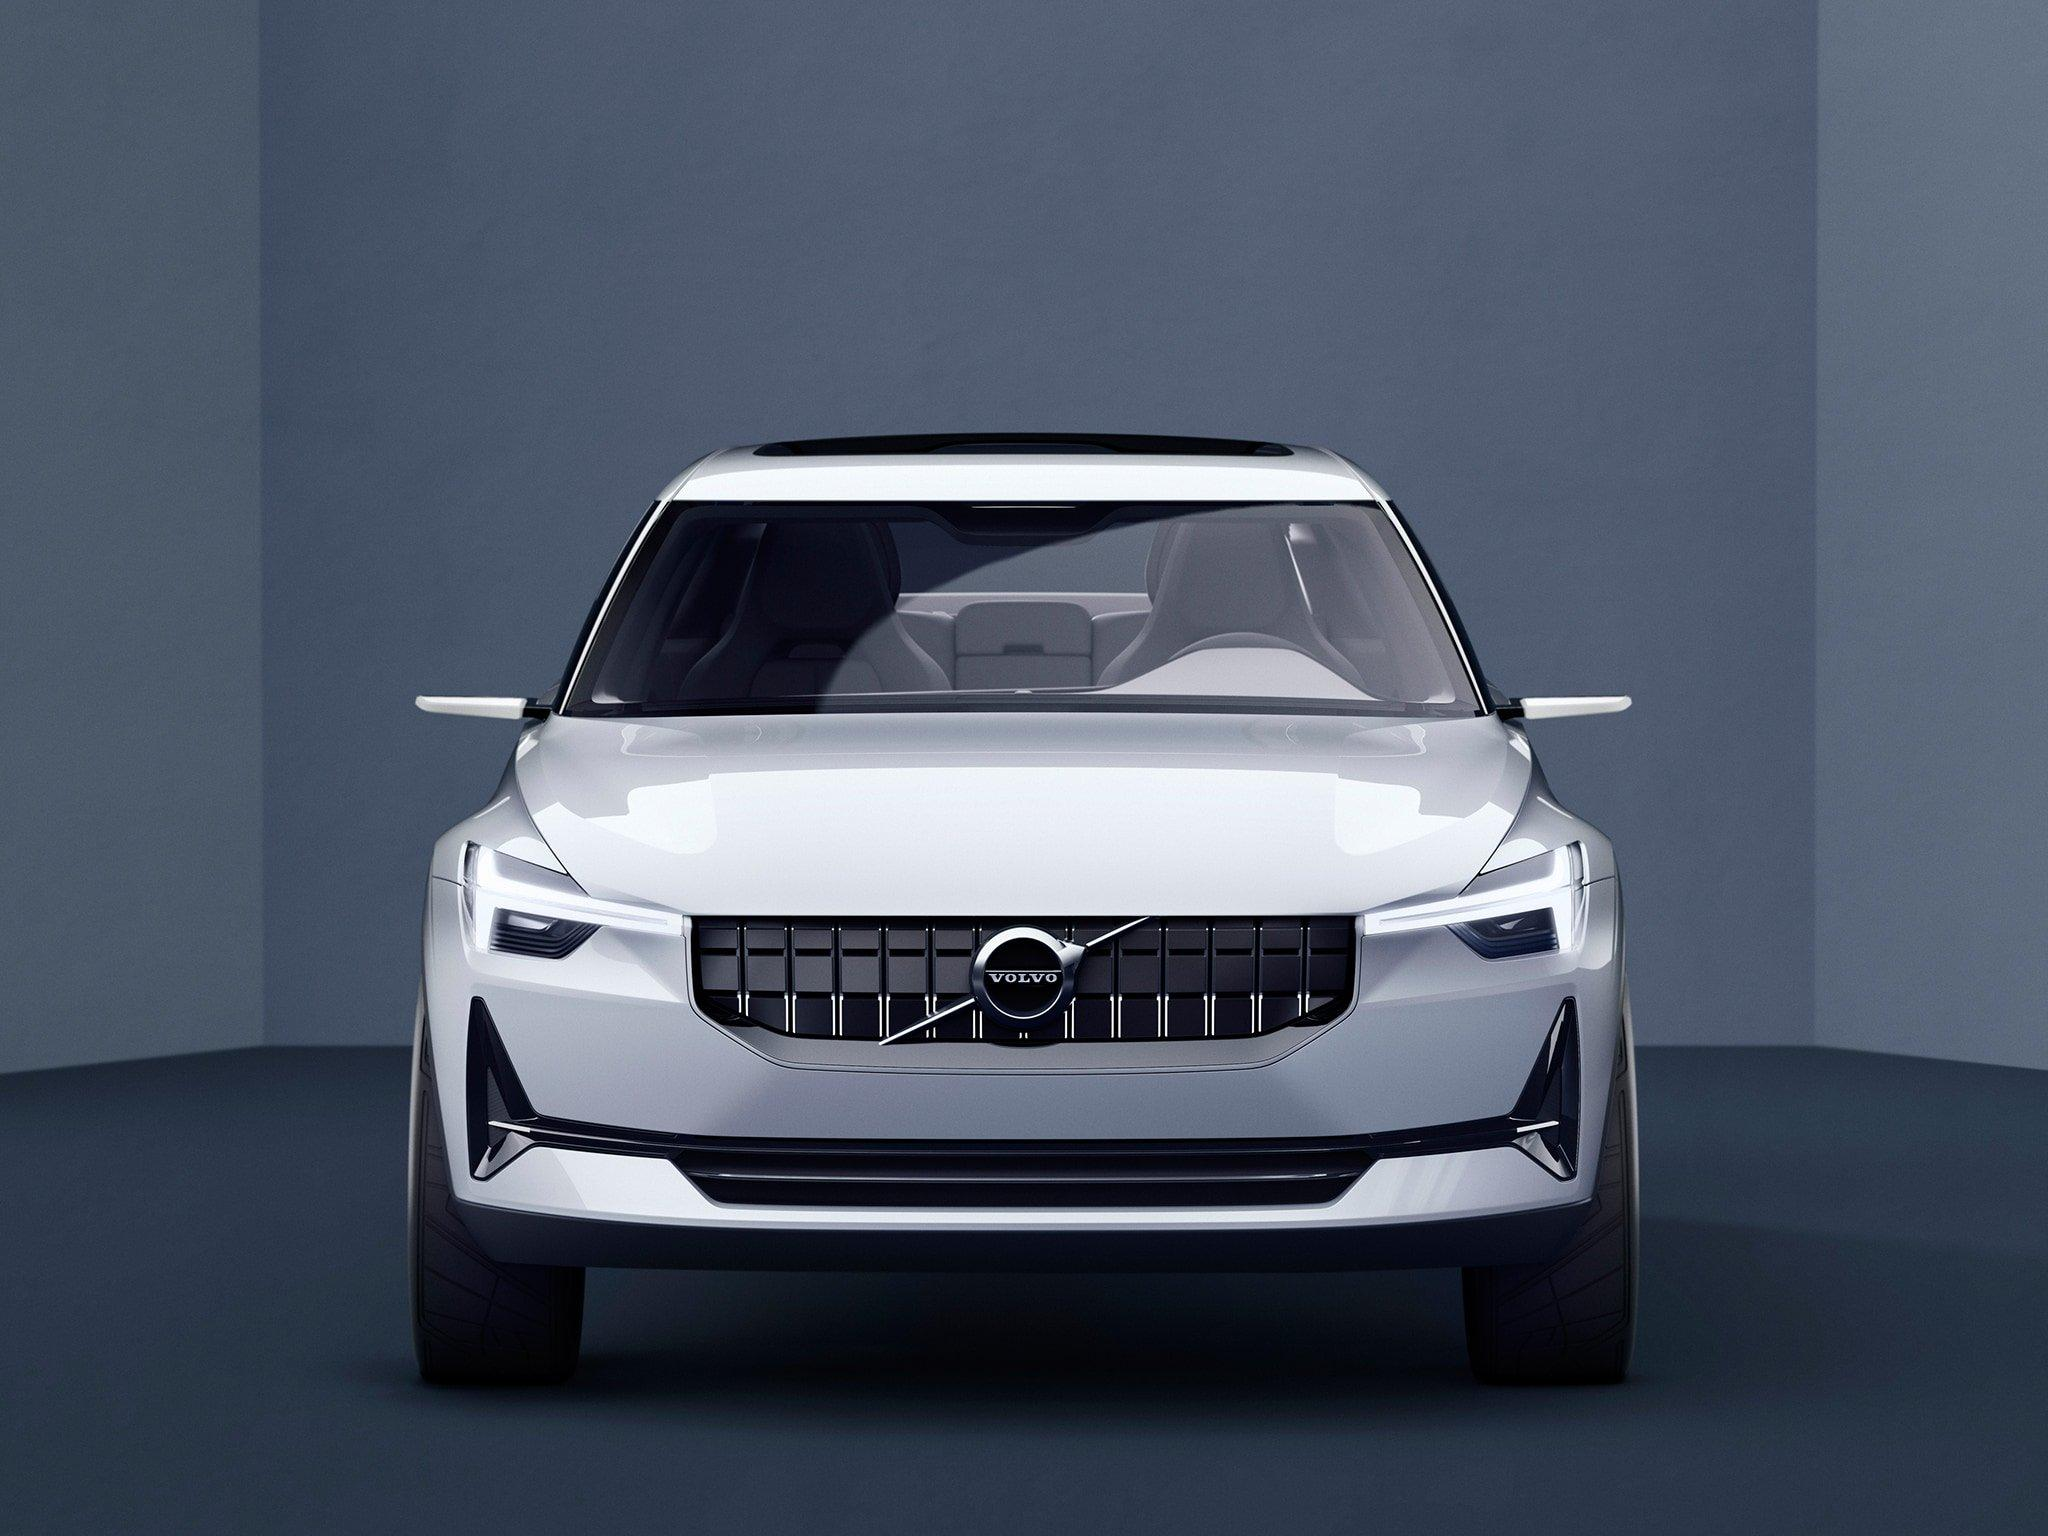 Polestar 2 From Volvo -- Electric Sedan With 350 Mile Range ...